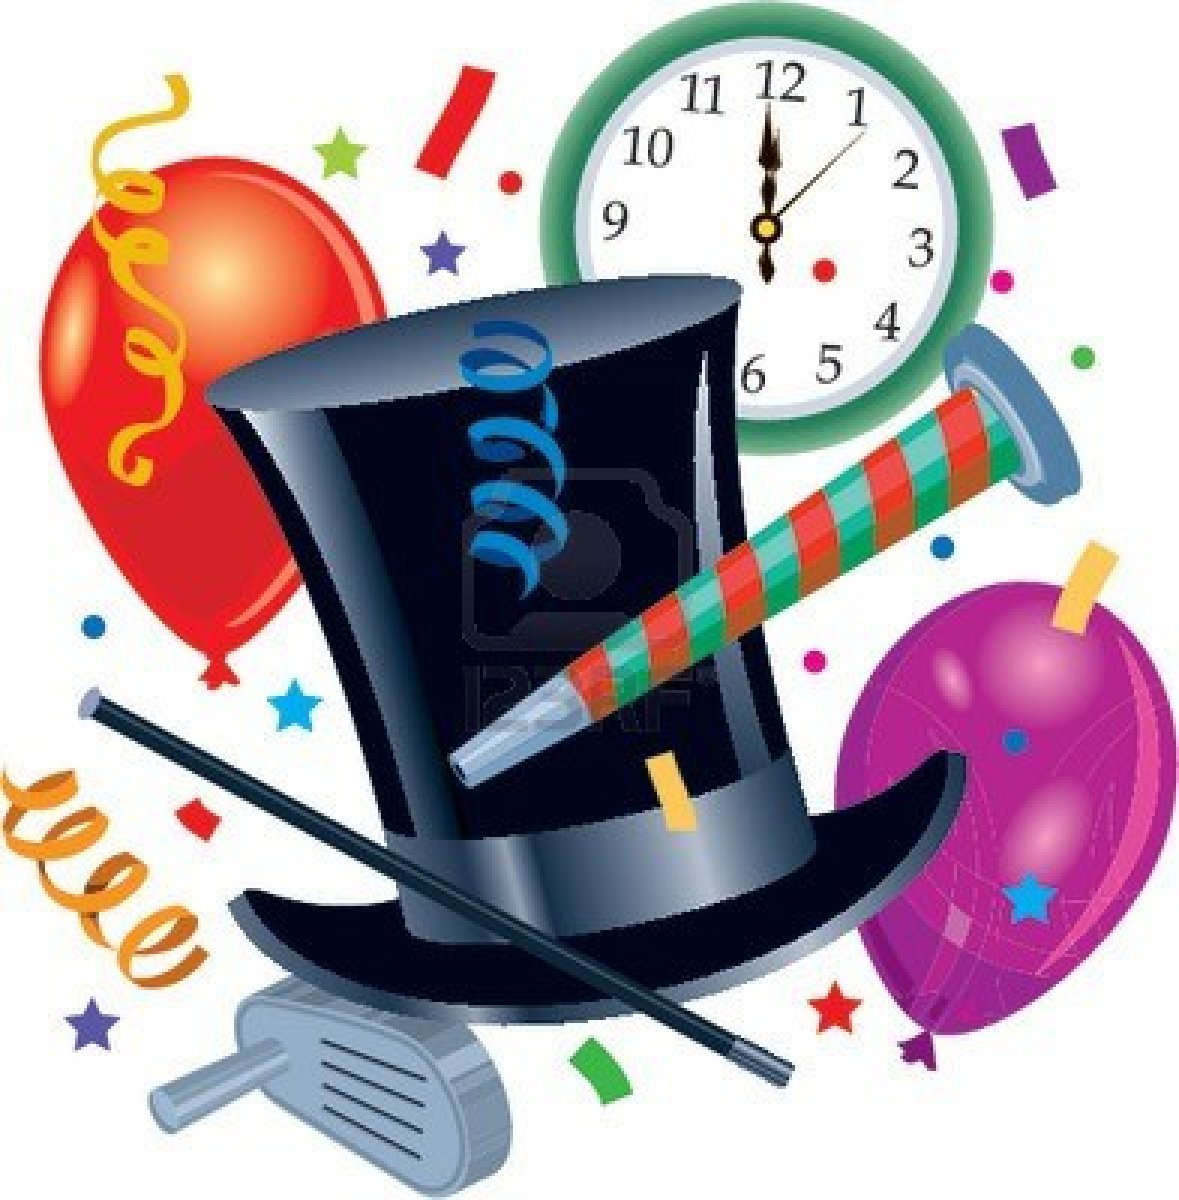 Free New Years Eve Party Images, Download Free Clip Art.